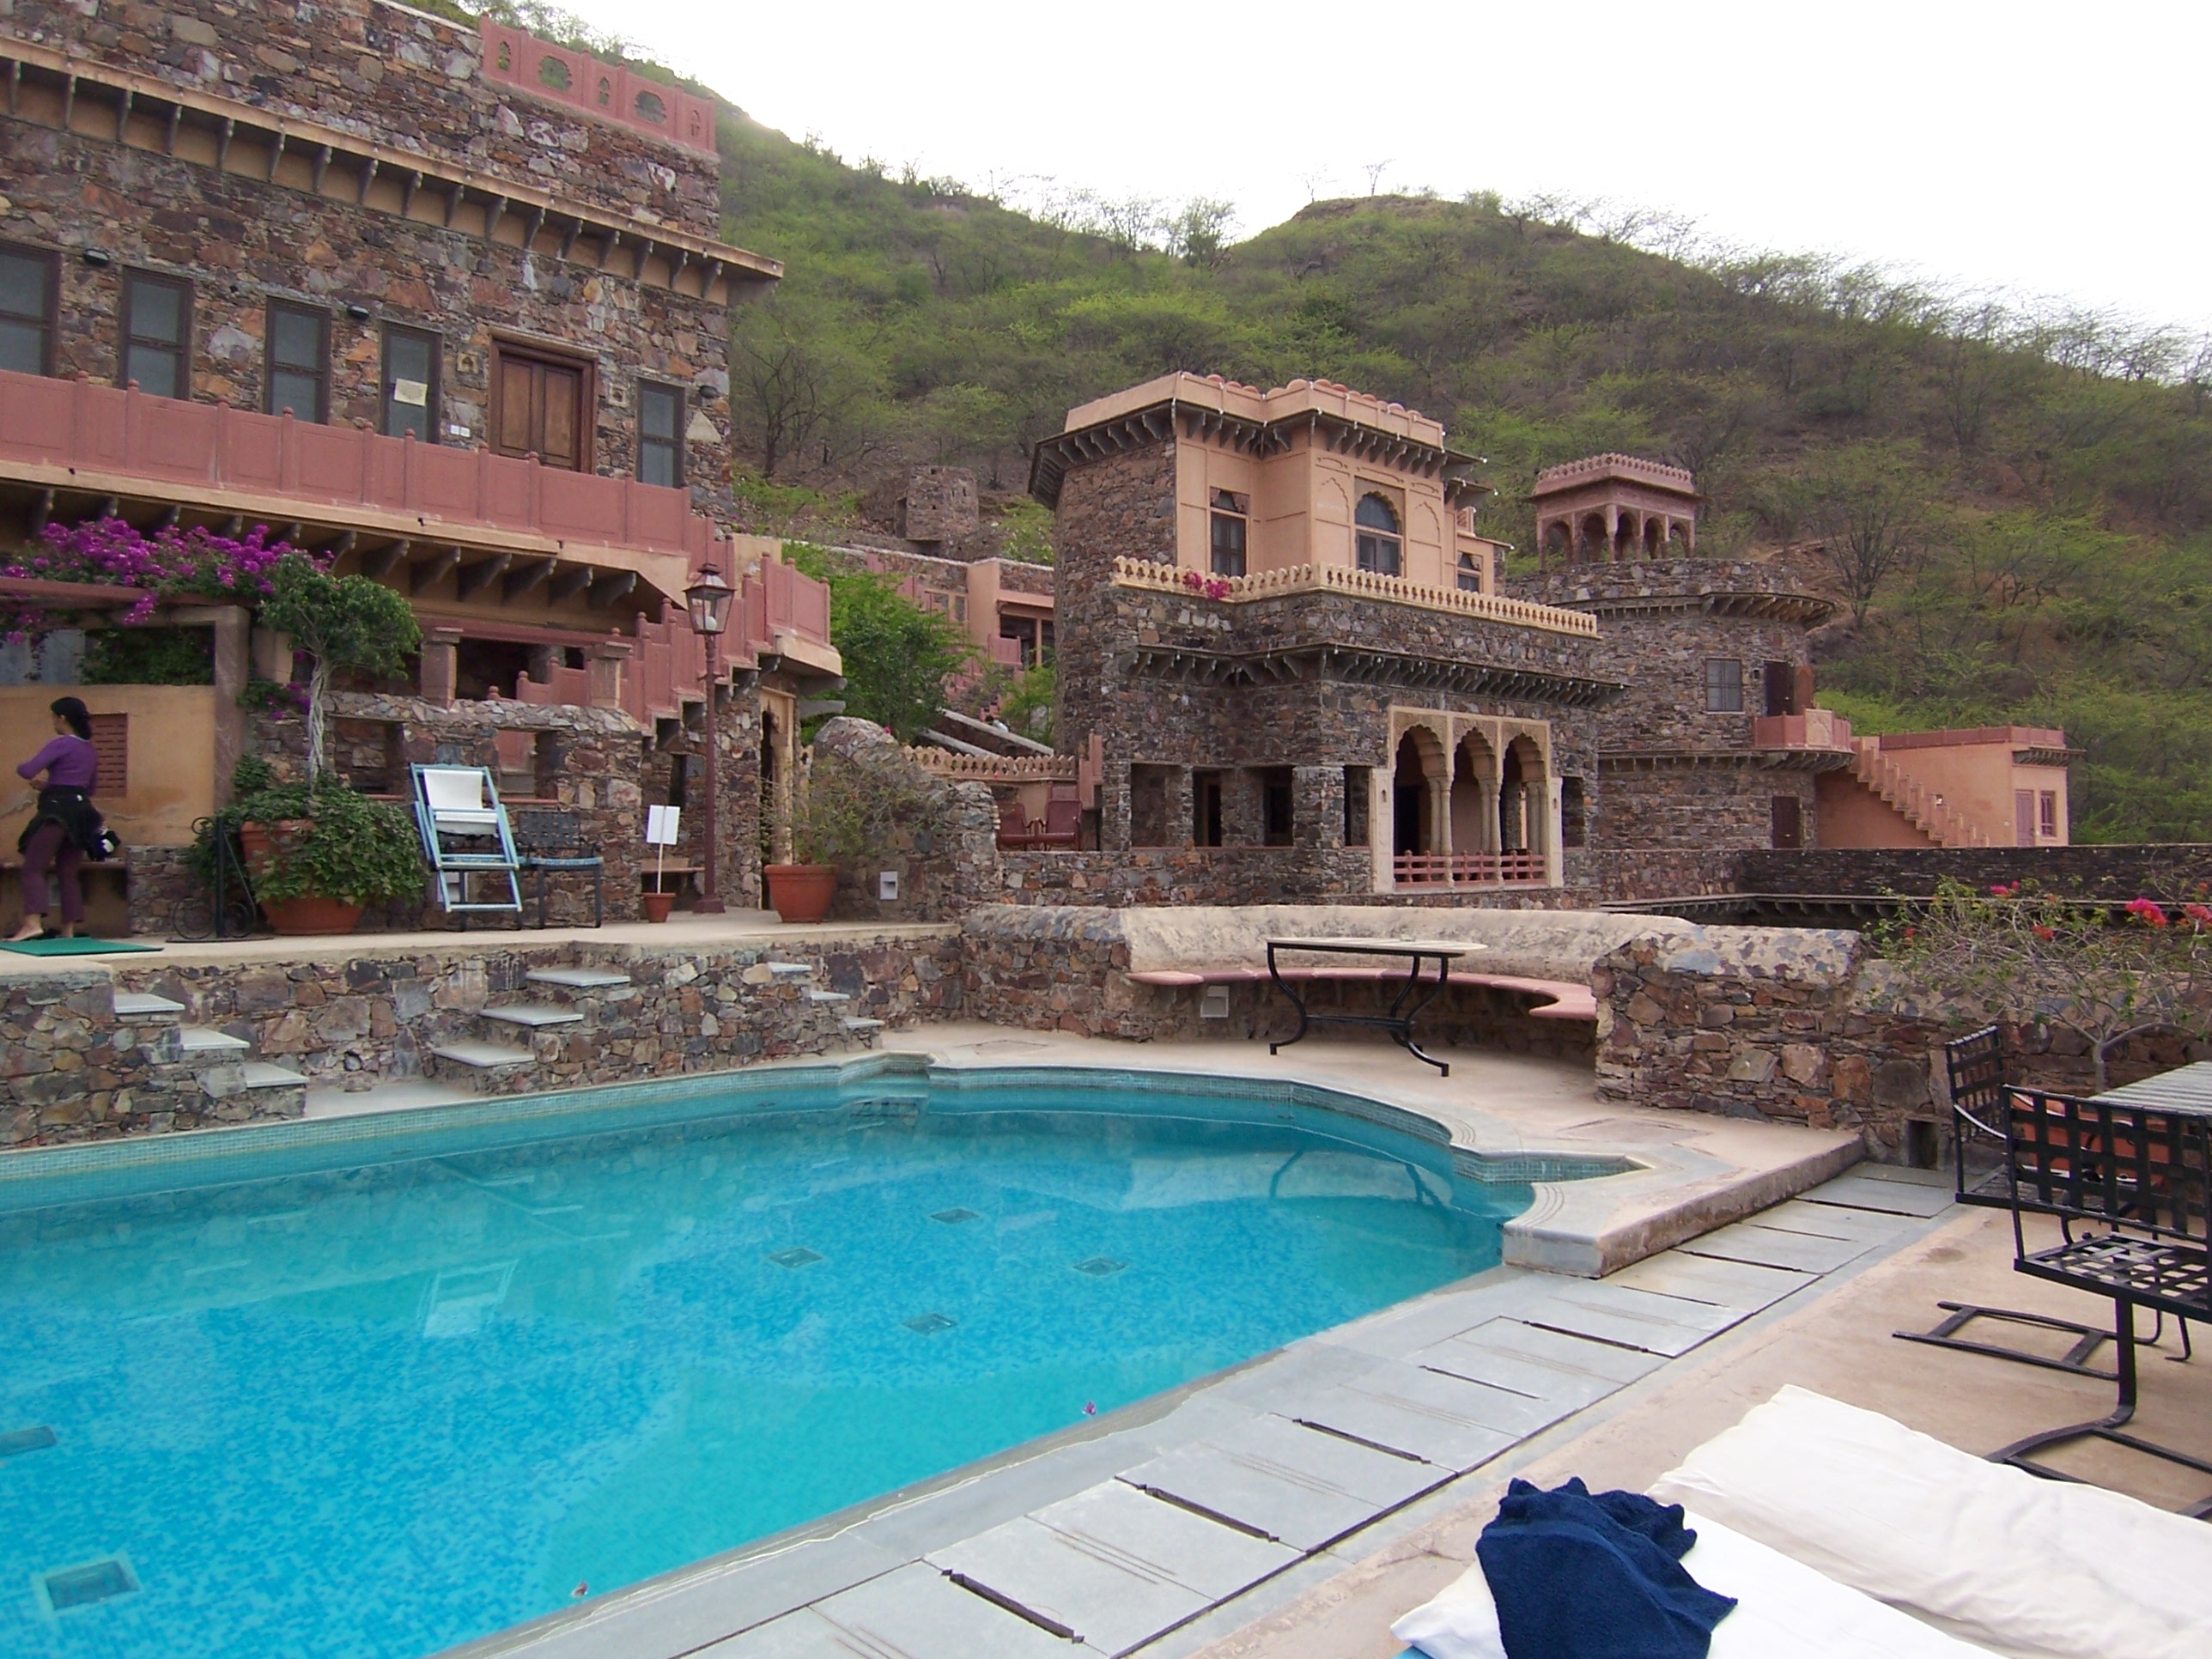 Floor Plan For Spa File Neemrana Fort Palace Pool Jpg Wikimedia Commons